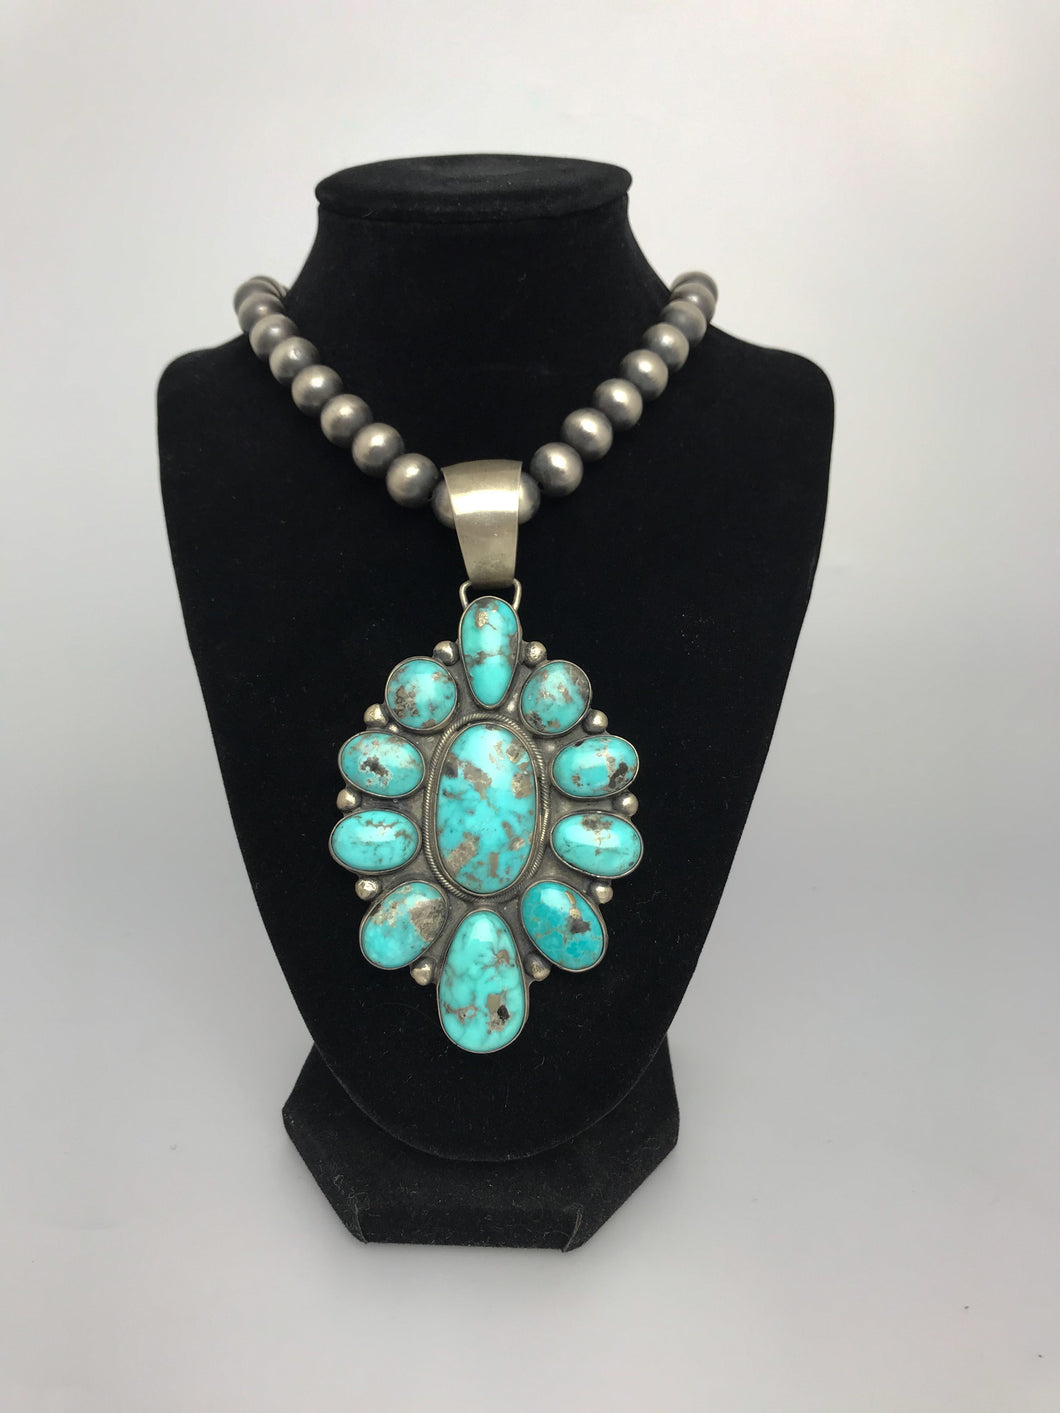 Large Sterling Silver Turquoise Cluster Necklace-SS1802P